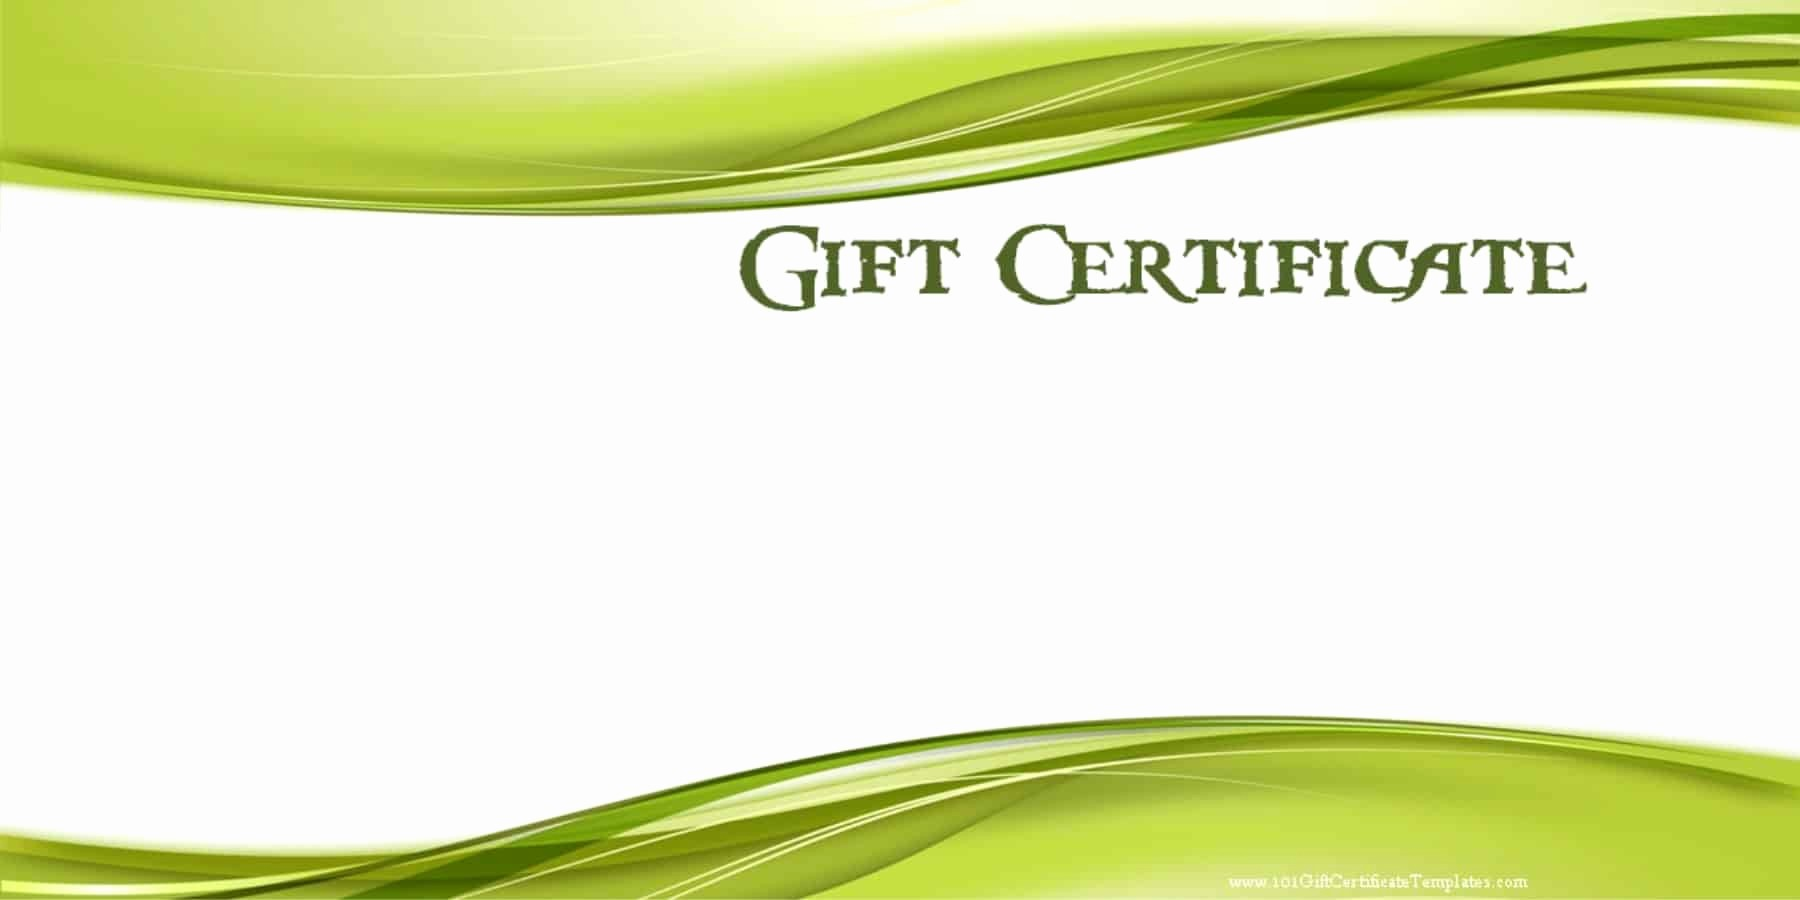 Gift Certificate Samples Free Templates Fresh Printable Gift Certificate Templates